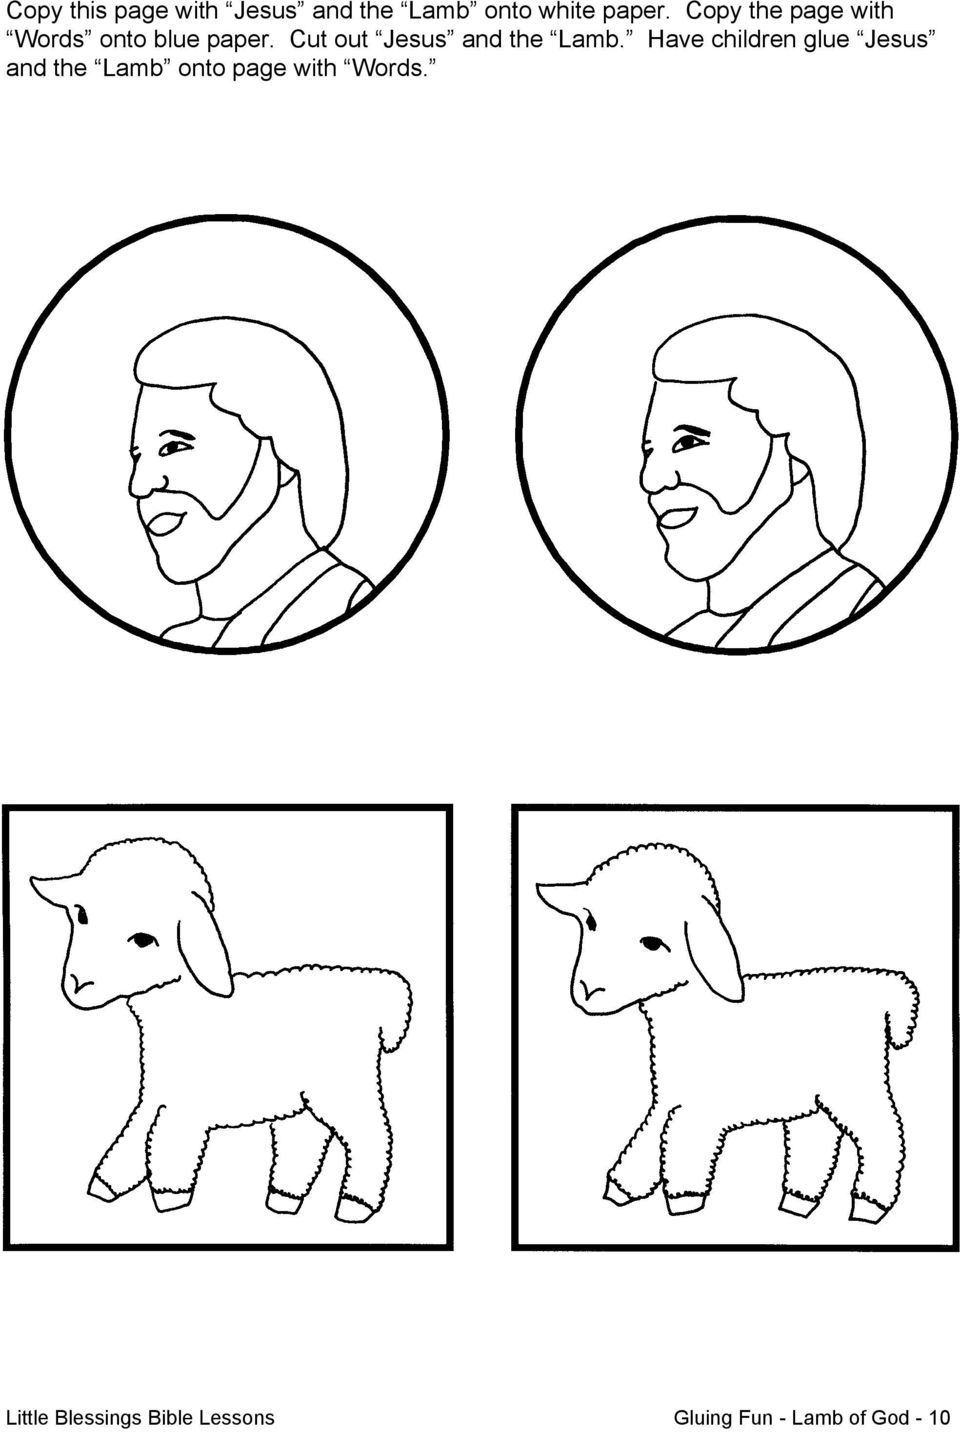 Cut out Jesus and the Lamb.